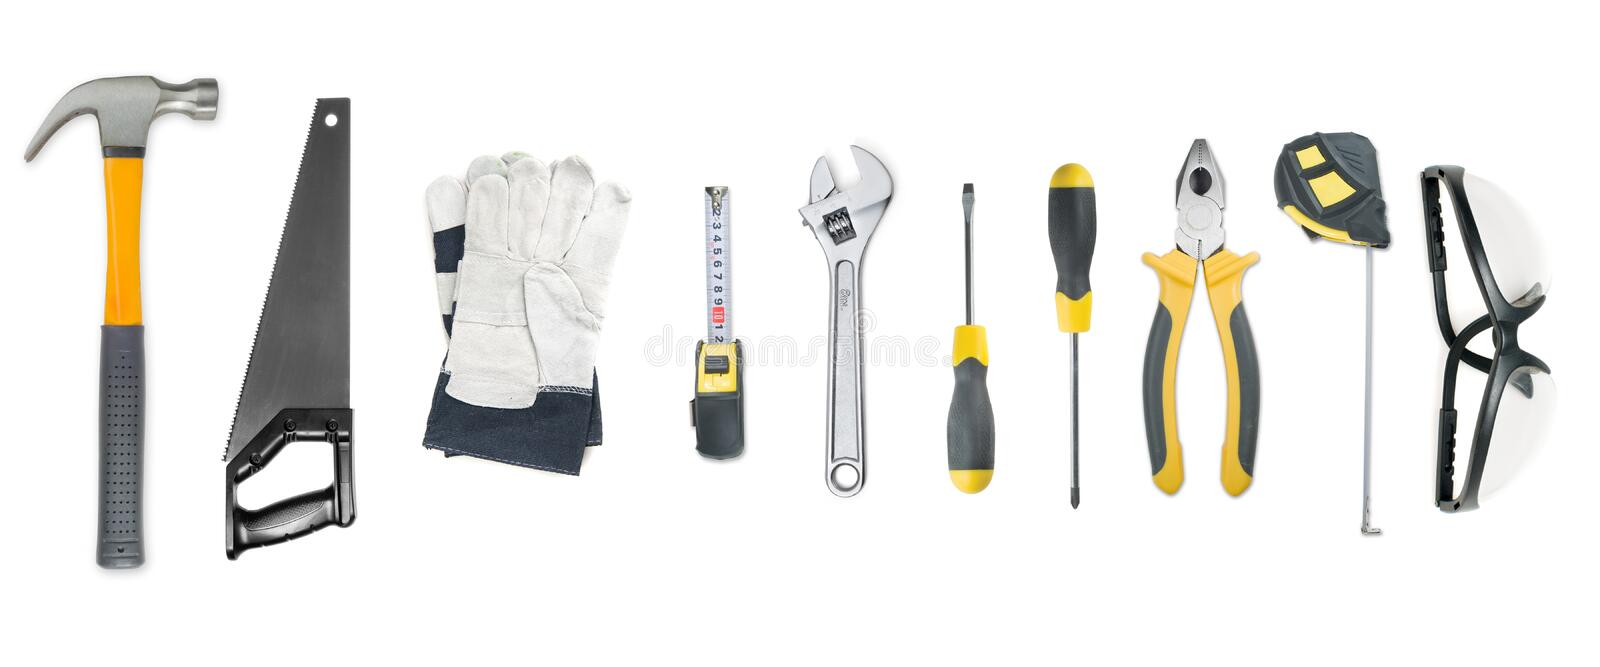 Download Set of tool stock image. Image of repairing, measure, scale - 9576957